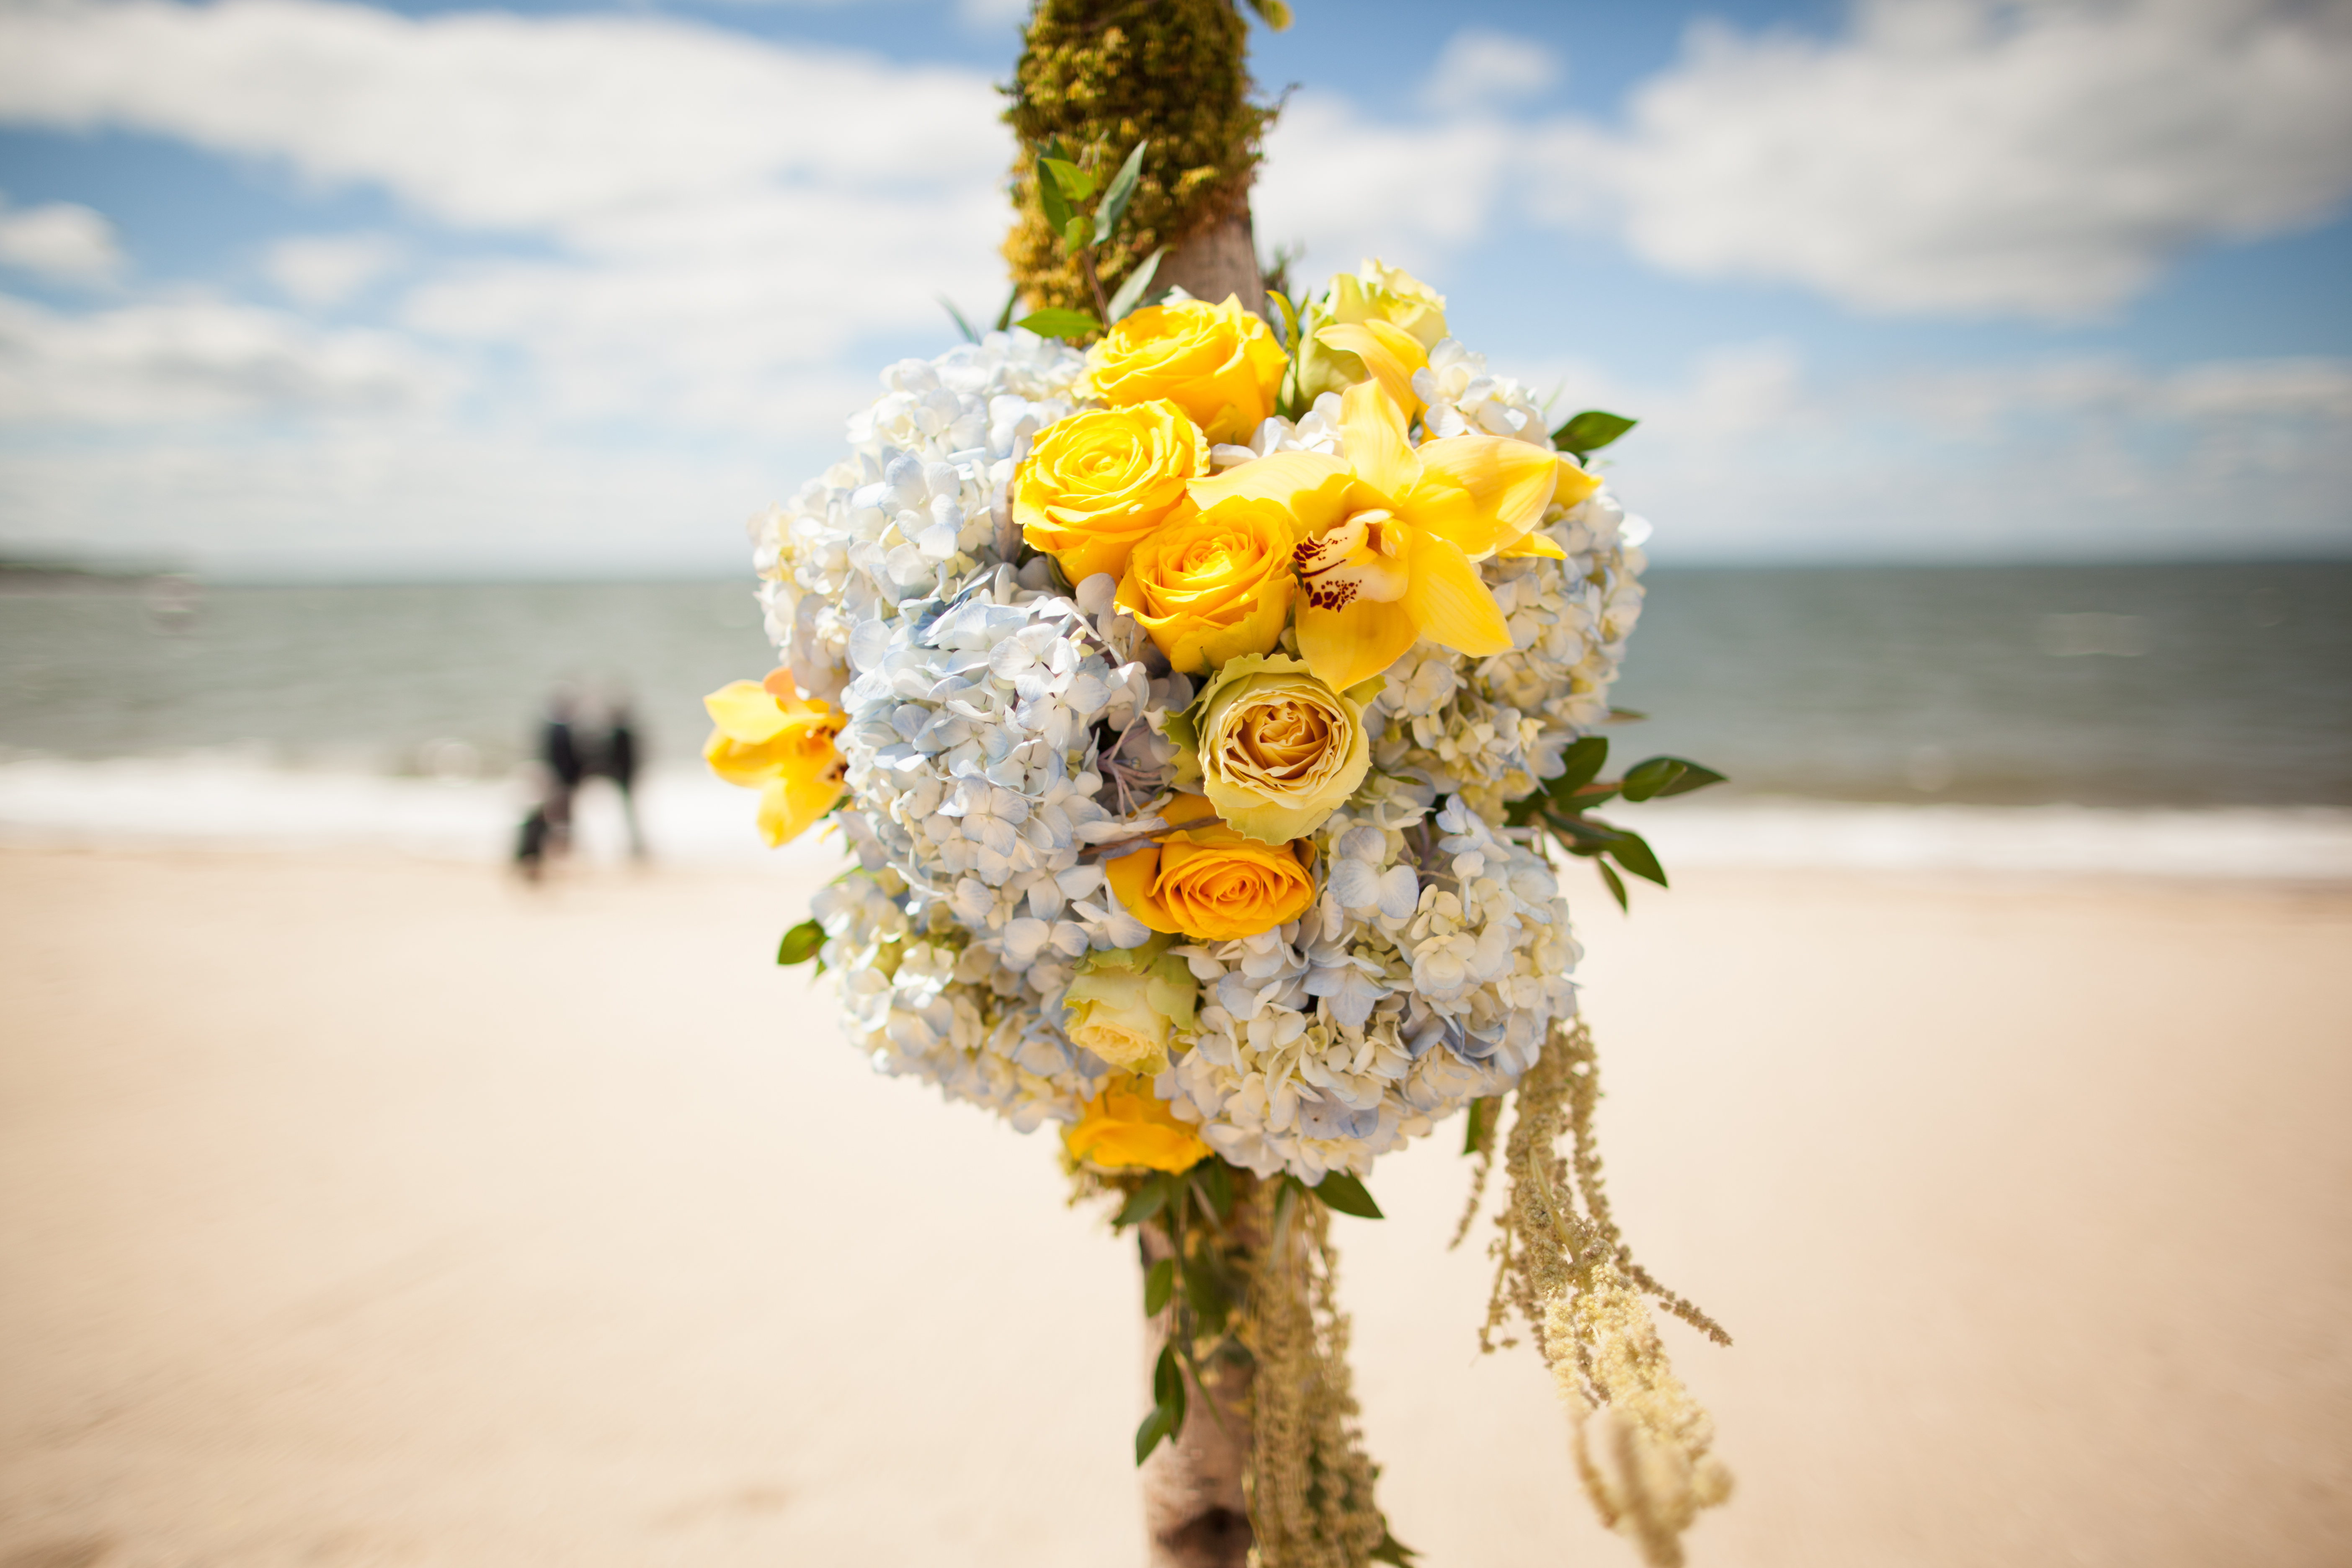 art-of-perfection-event-design-luxury-destination-wedding-planner-italy-yellow-white-flower